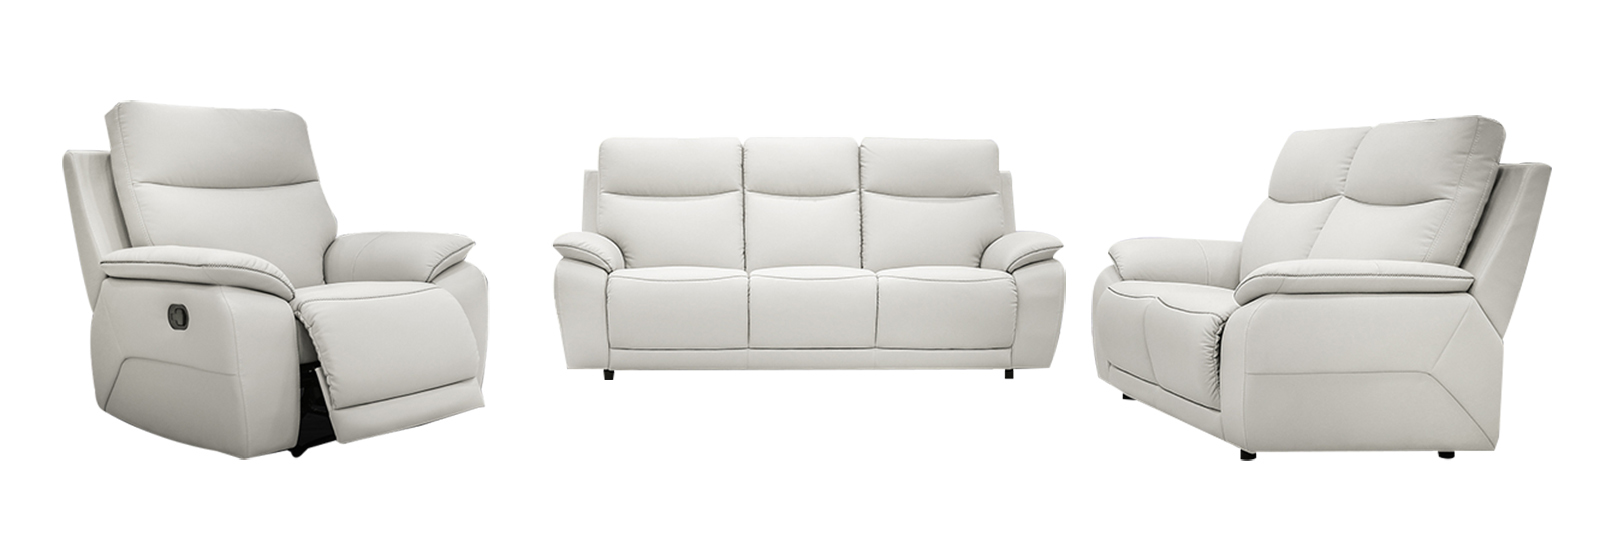 Sofa KH243 Half leather  1R + 2s + 3s.jpg